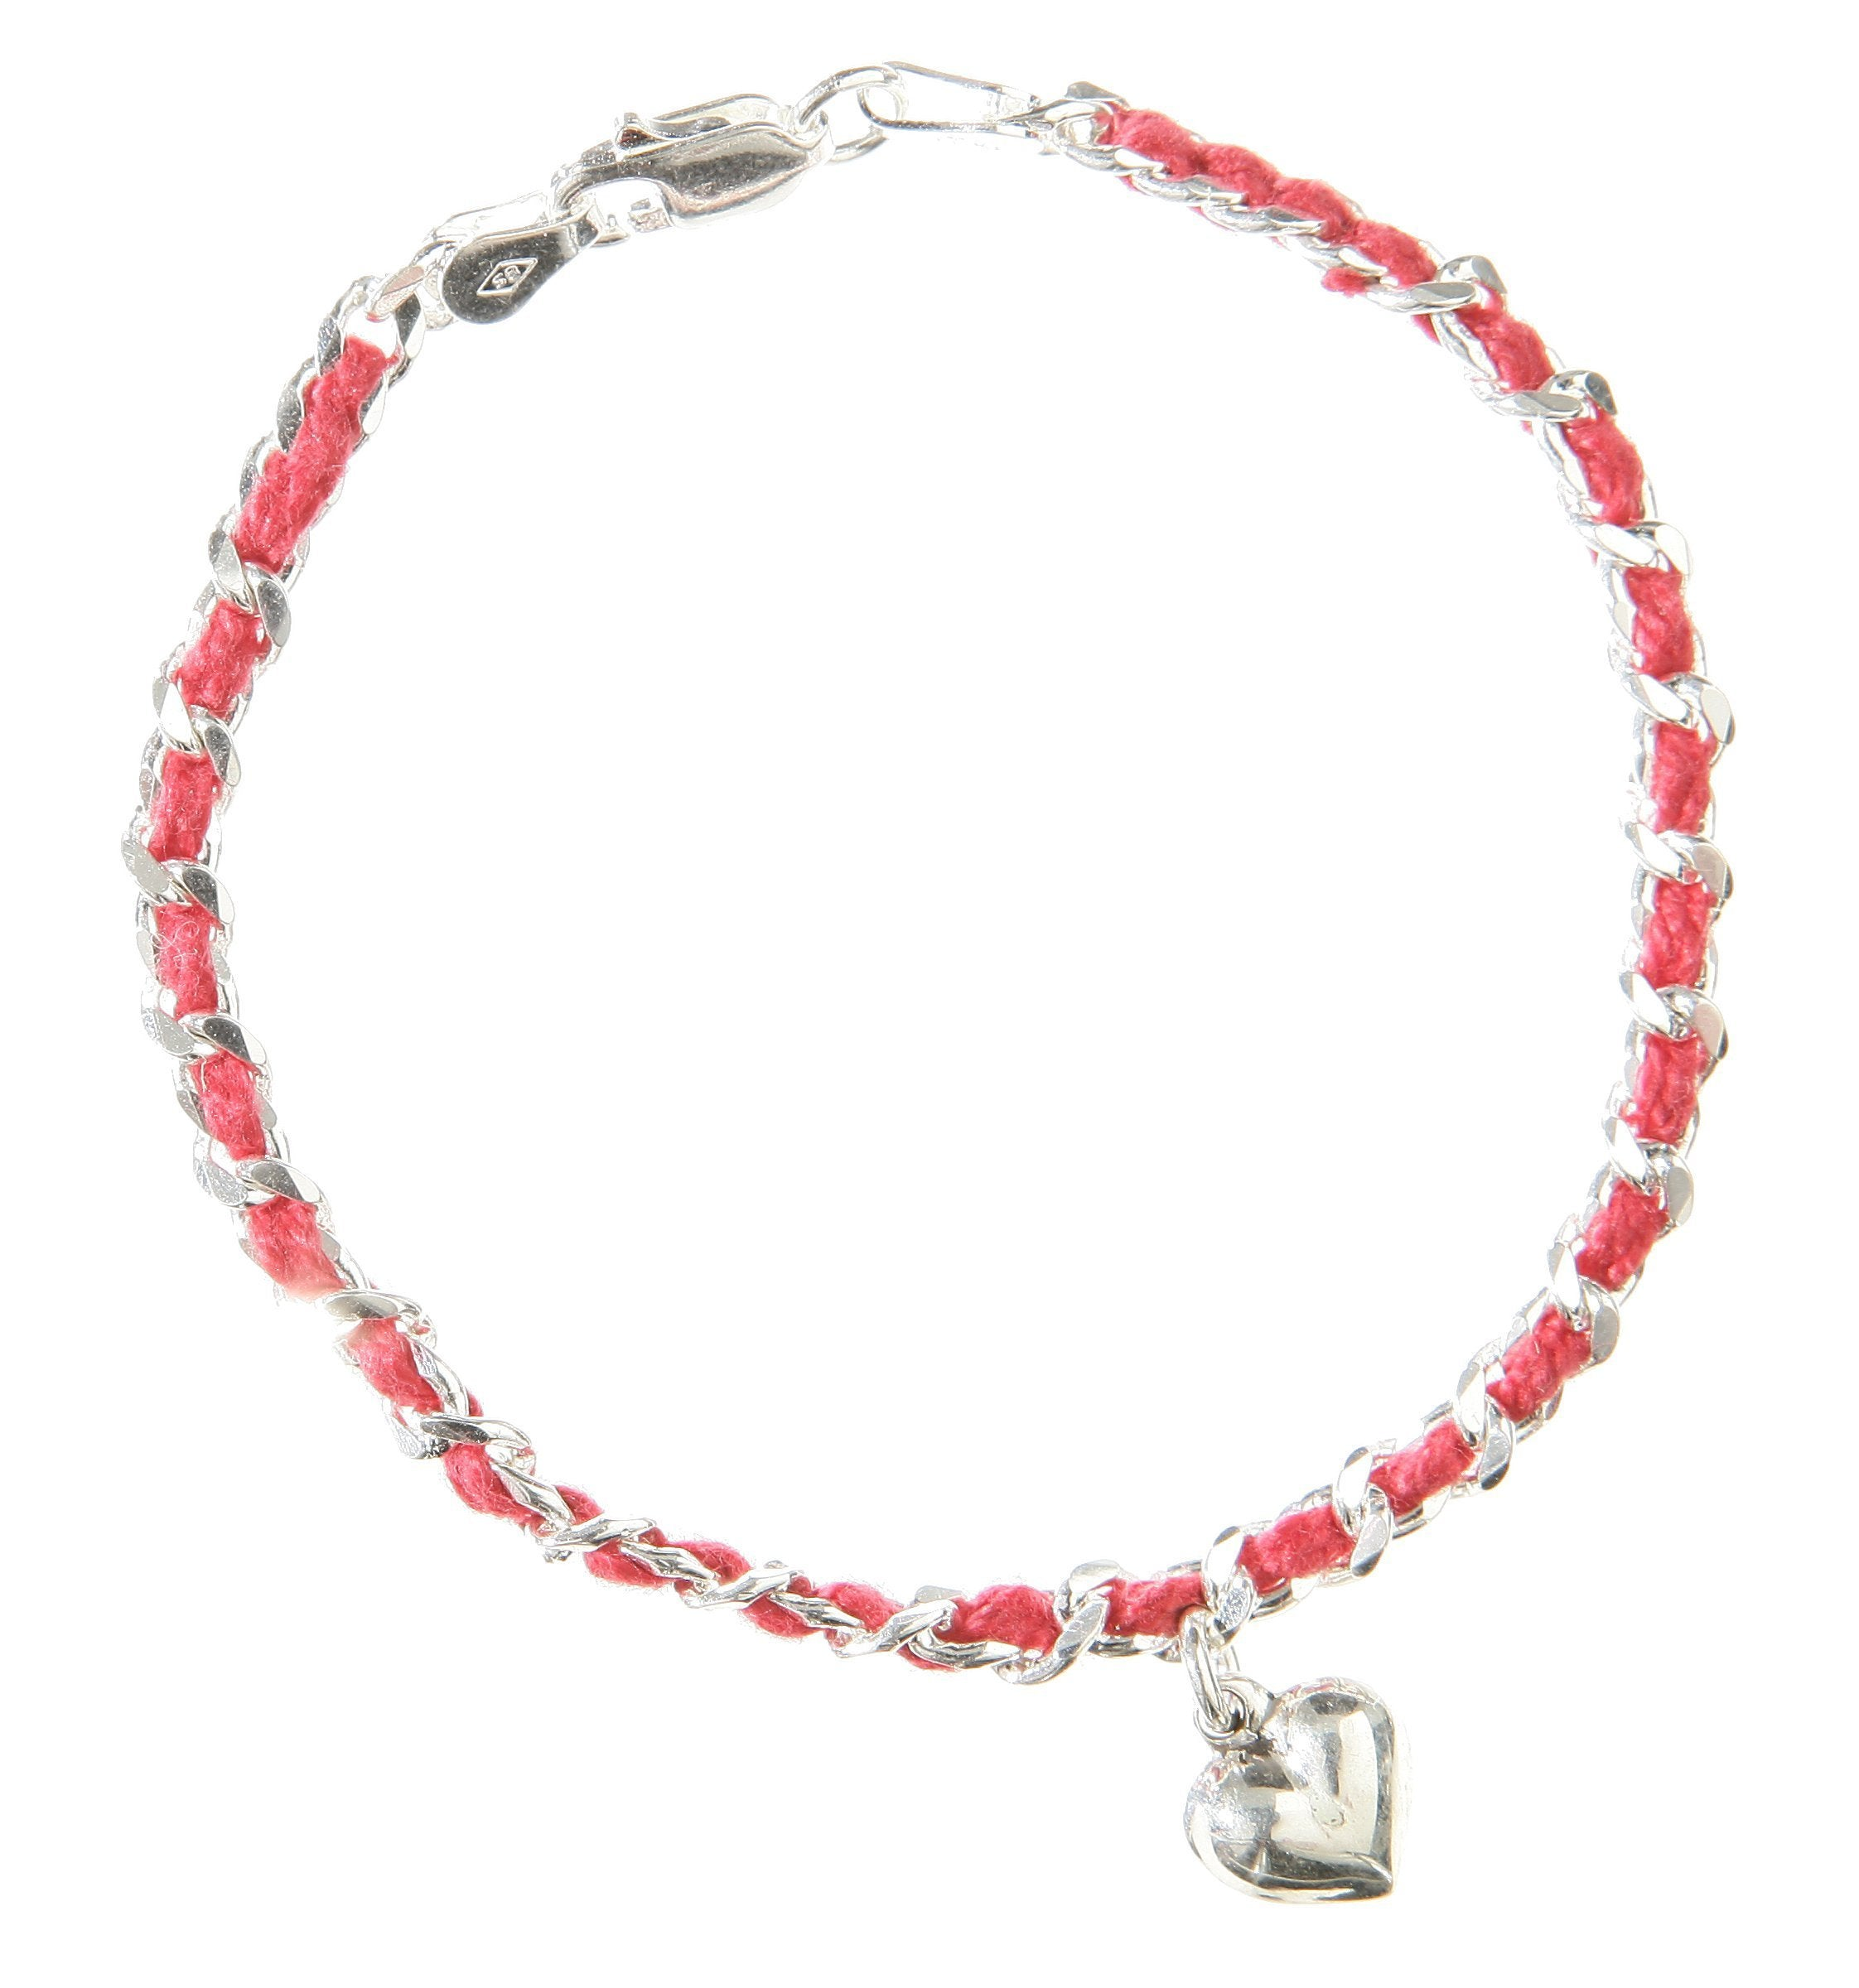 Red String Bendel with Puff Heart Bracelet in Sterling Silver